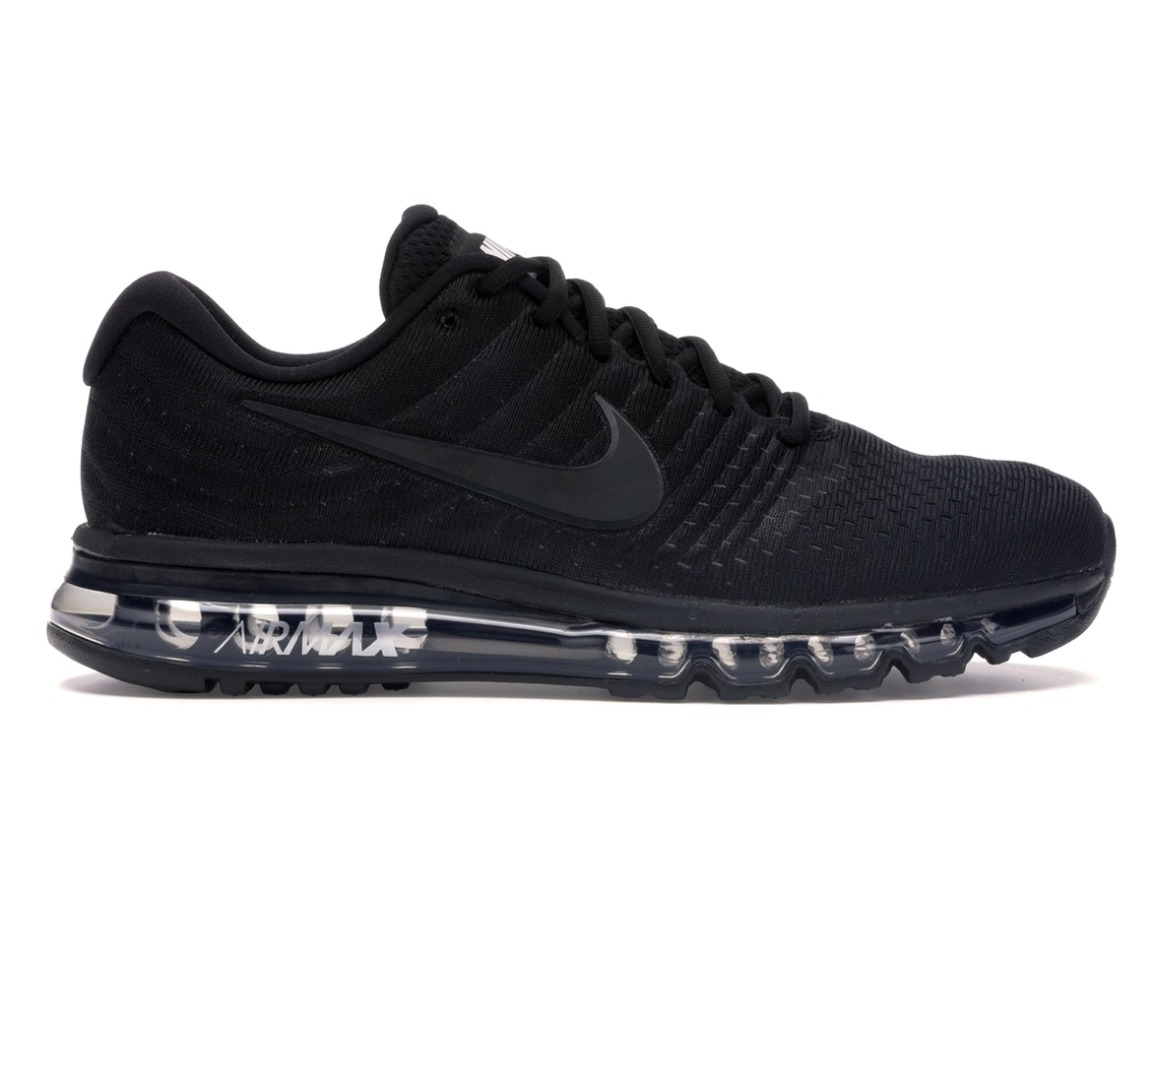 Details about NEW $190 NIKE AIR MAX 2017 TRIPPLE BLACK FLYMESH 849559 004 RUNNING SNEAKERS